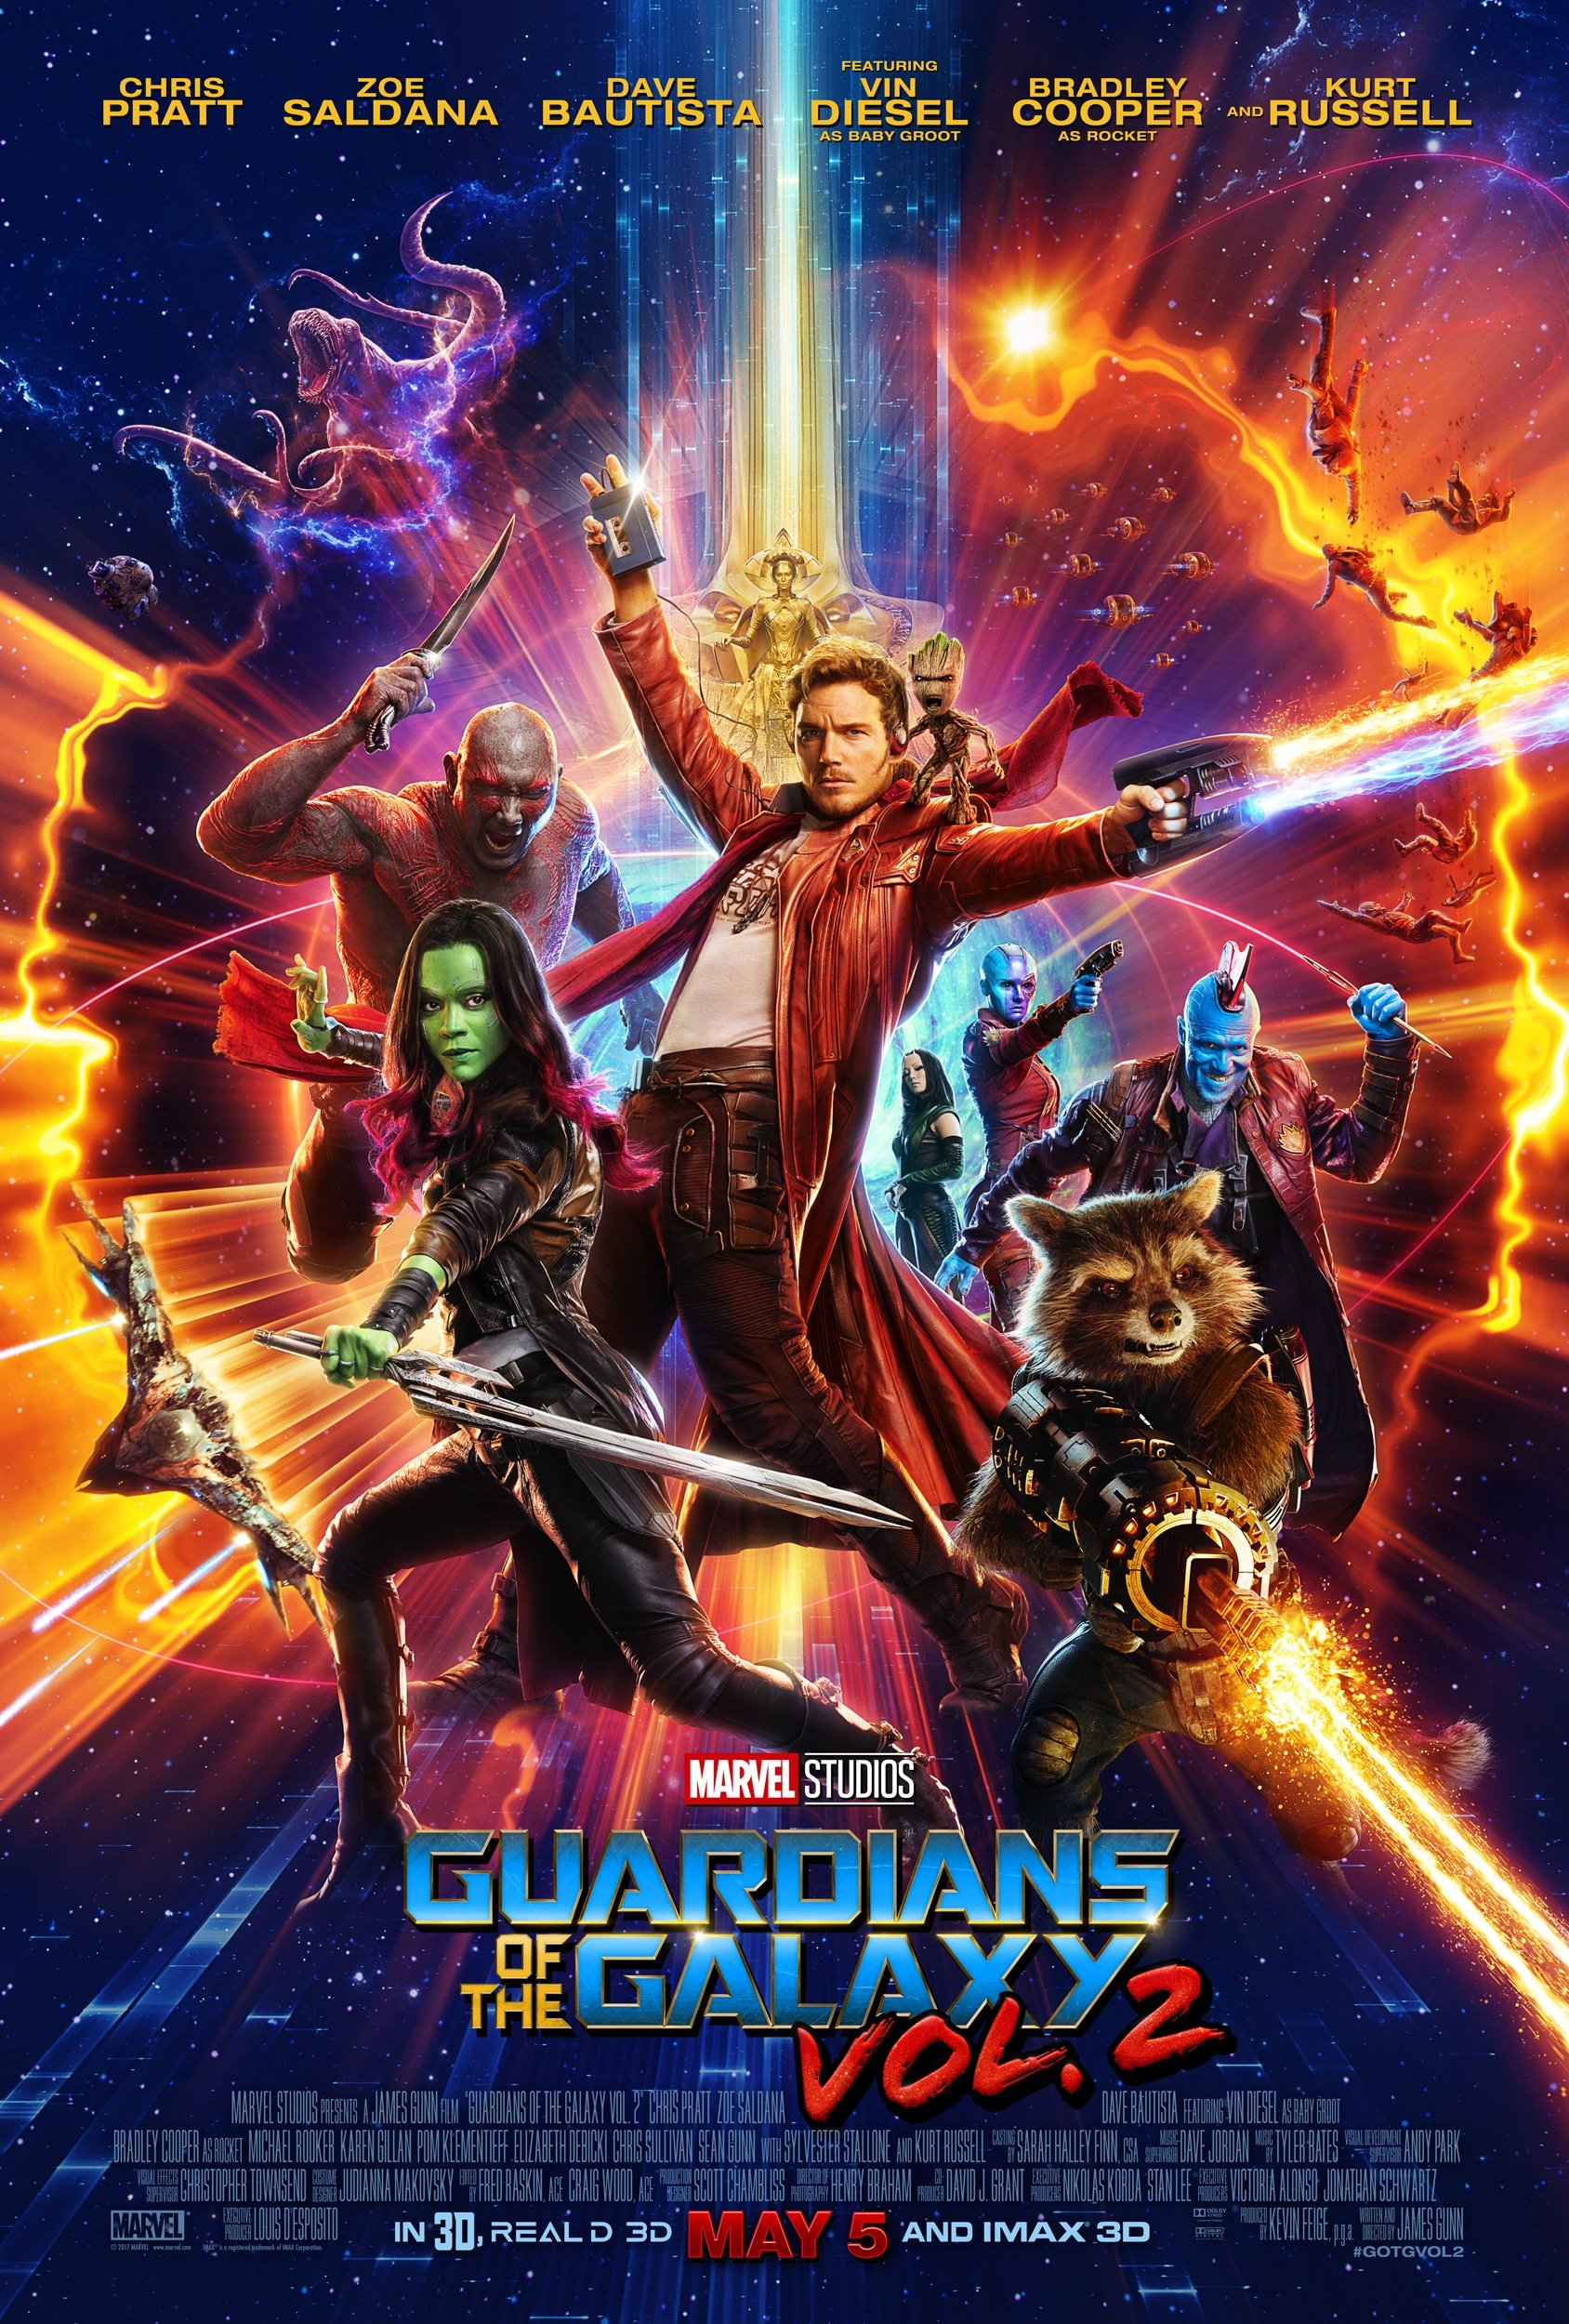 GUARDIANS OF THE GALAXY VOL. 2 – Special Look and Character Posters Now Available!